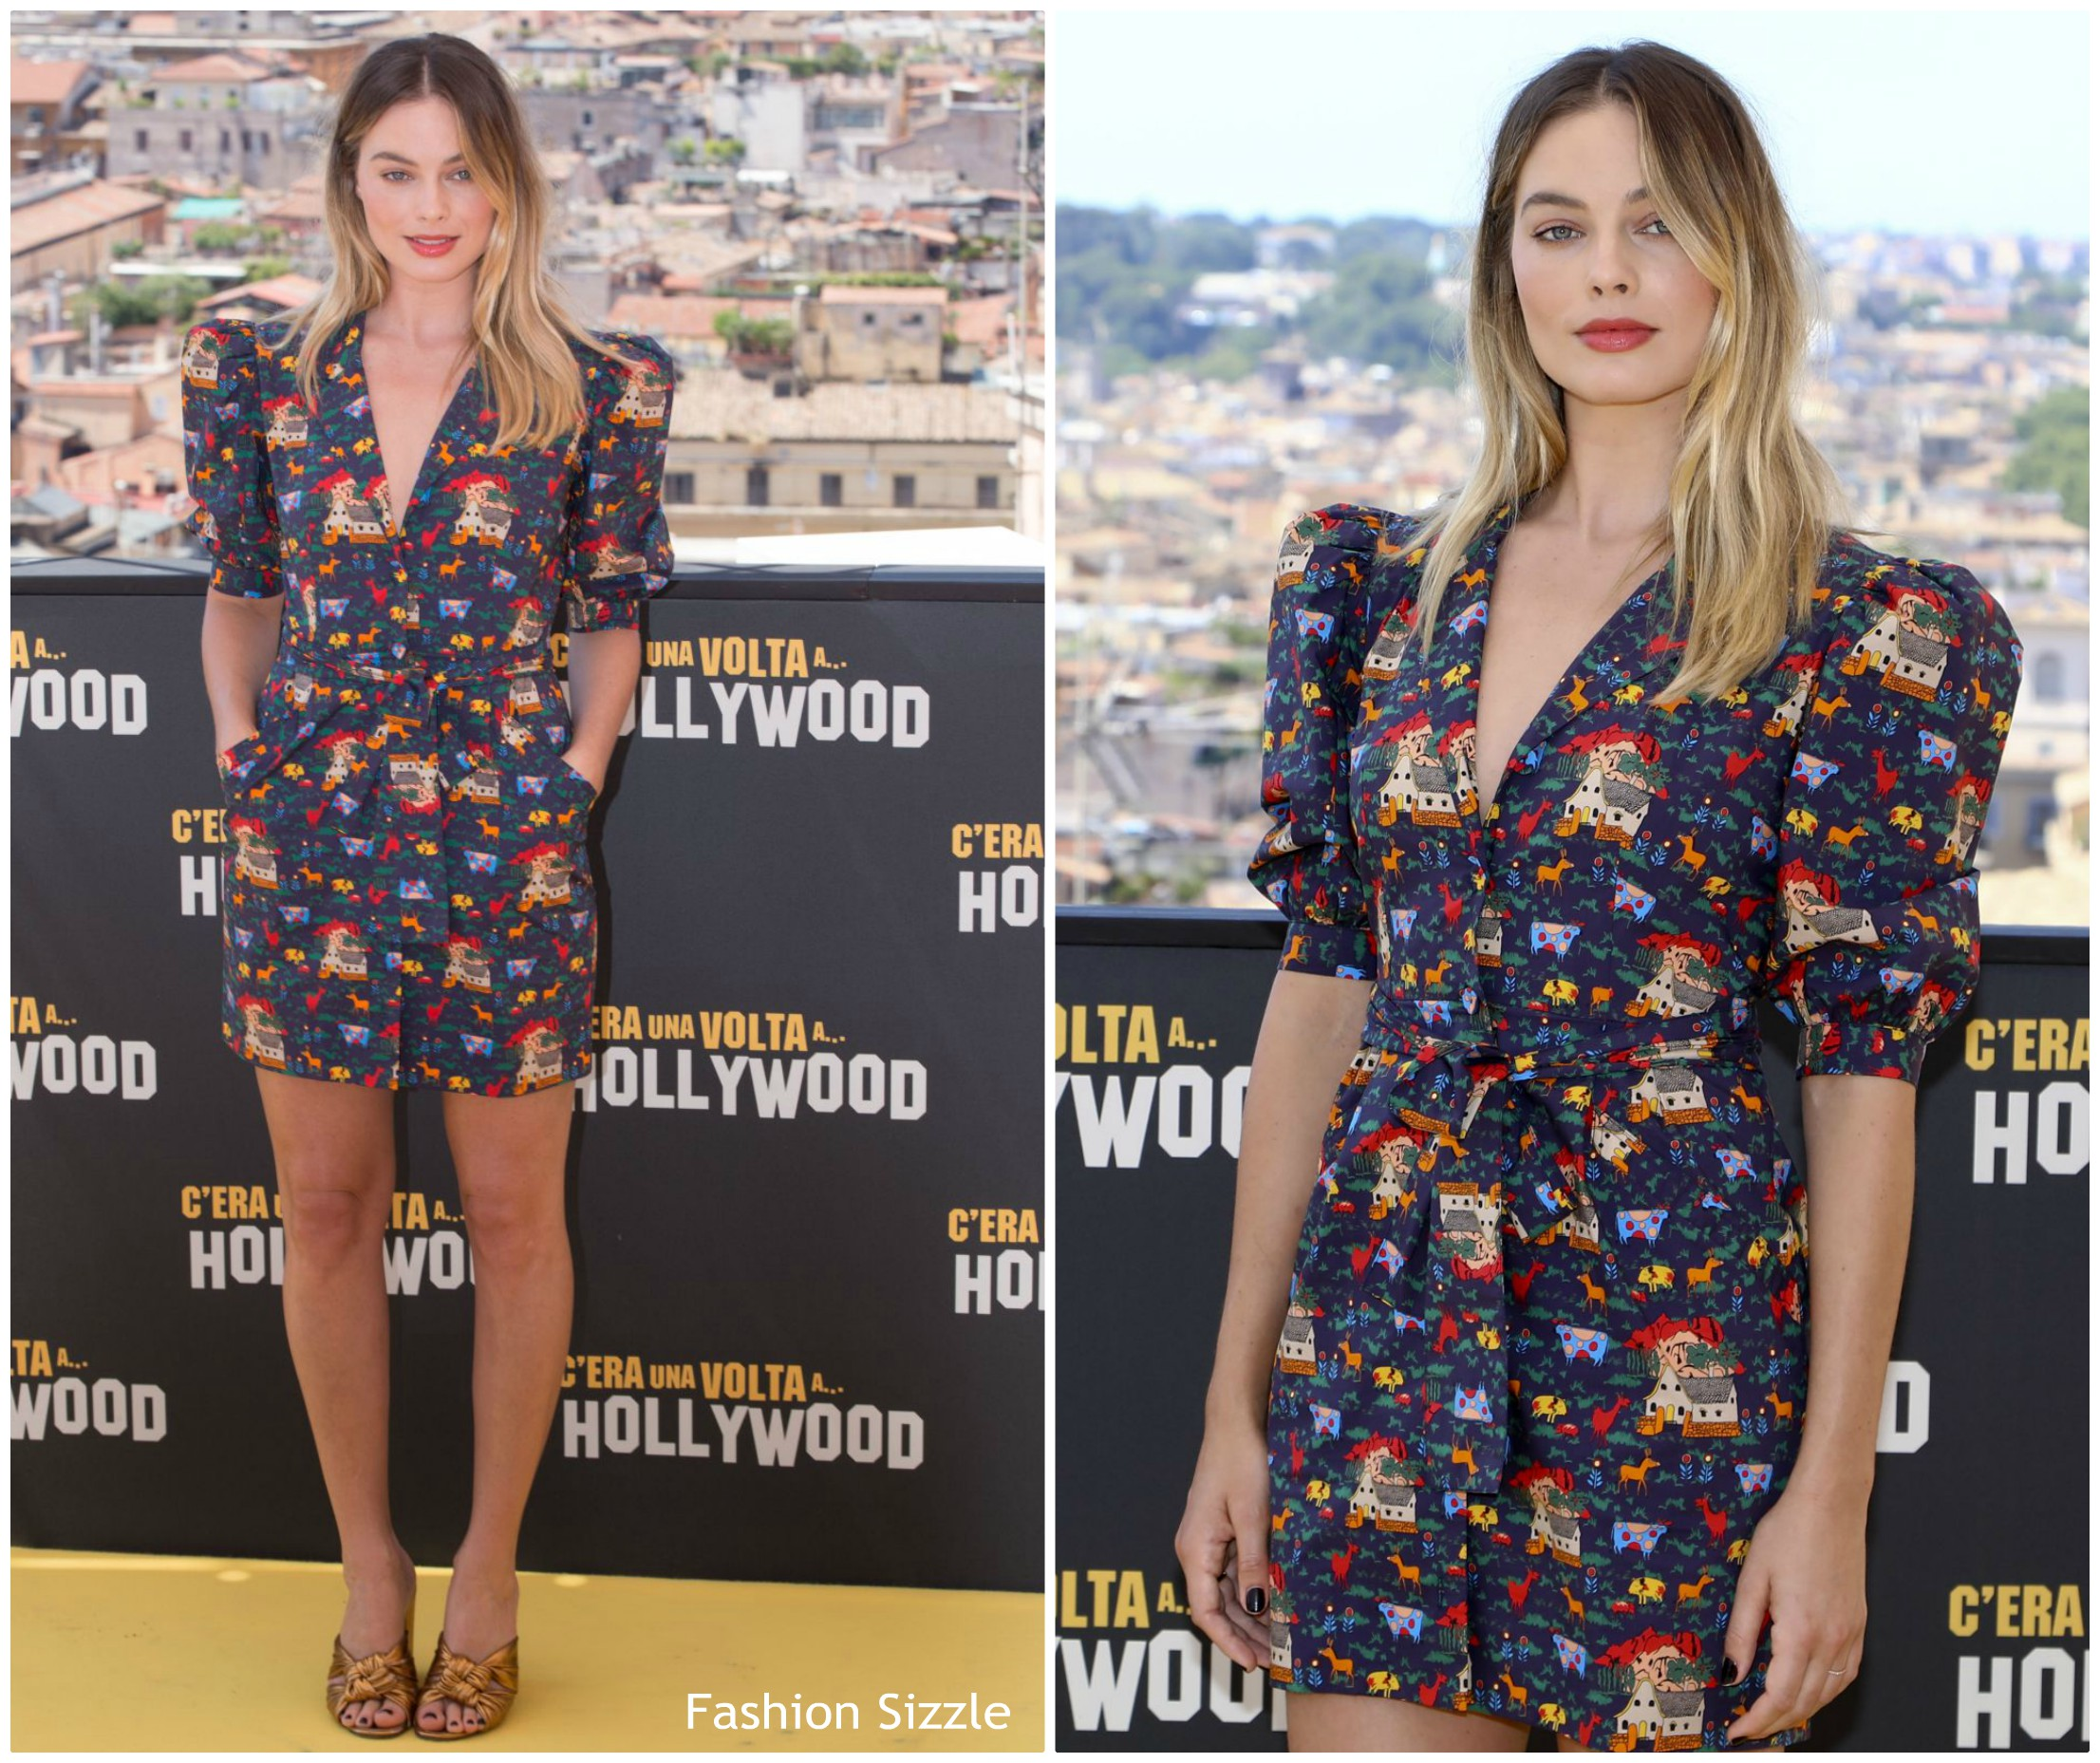 margot-robbie-in-Lhd-once-upon-a-time-in-hollywood-tome-photocall